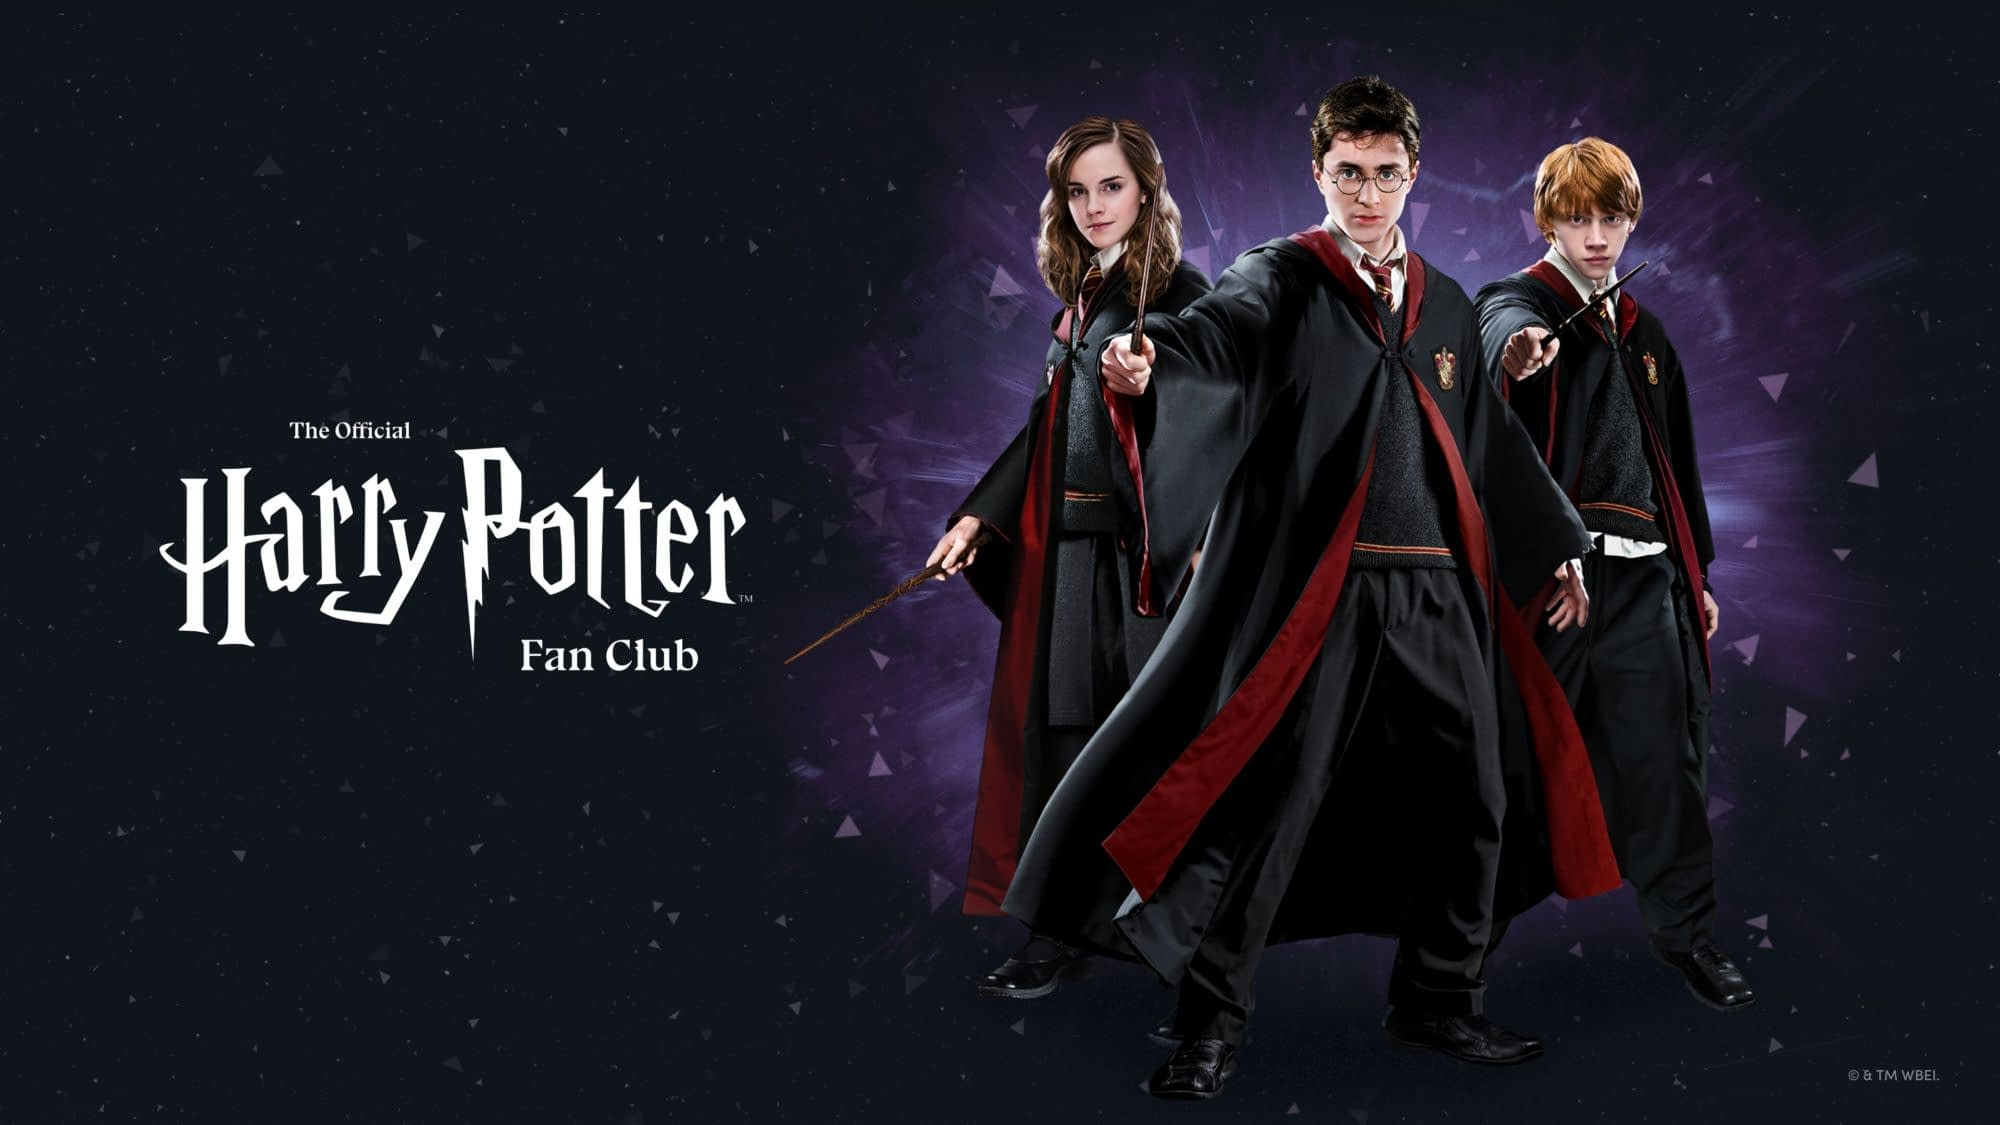 """""""Harry Potter"""" - Wizarding World Digital Introduces The Official Harry Potter Fan Club"""